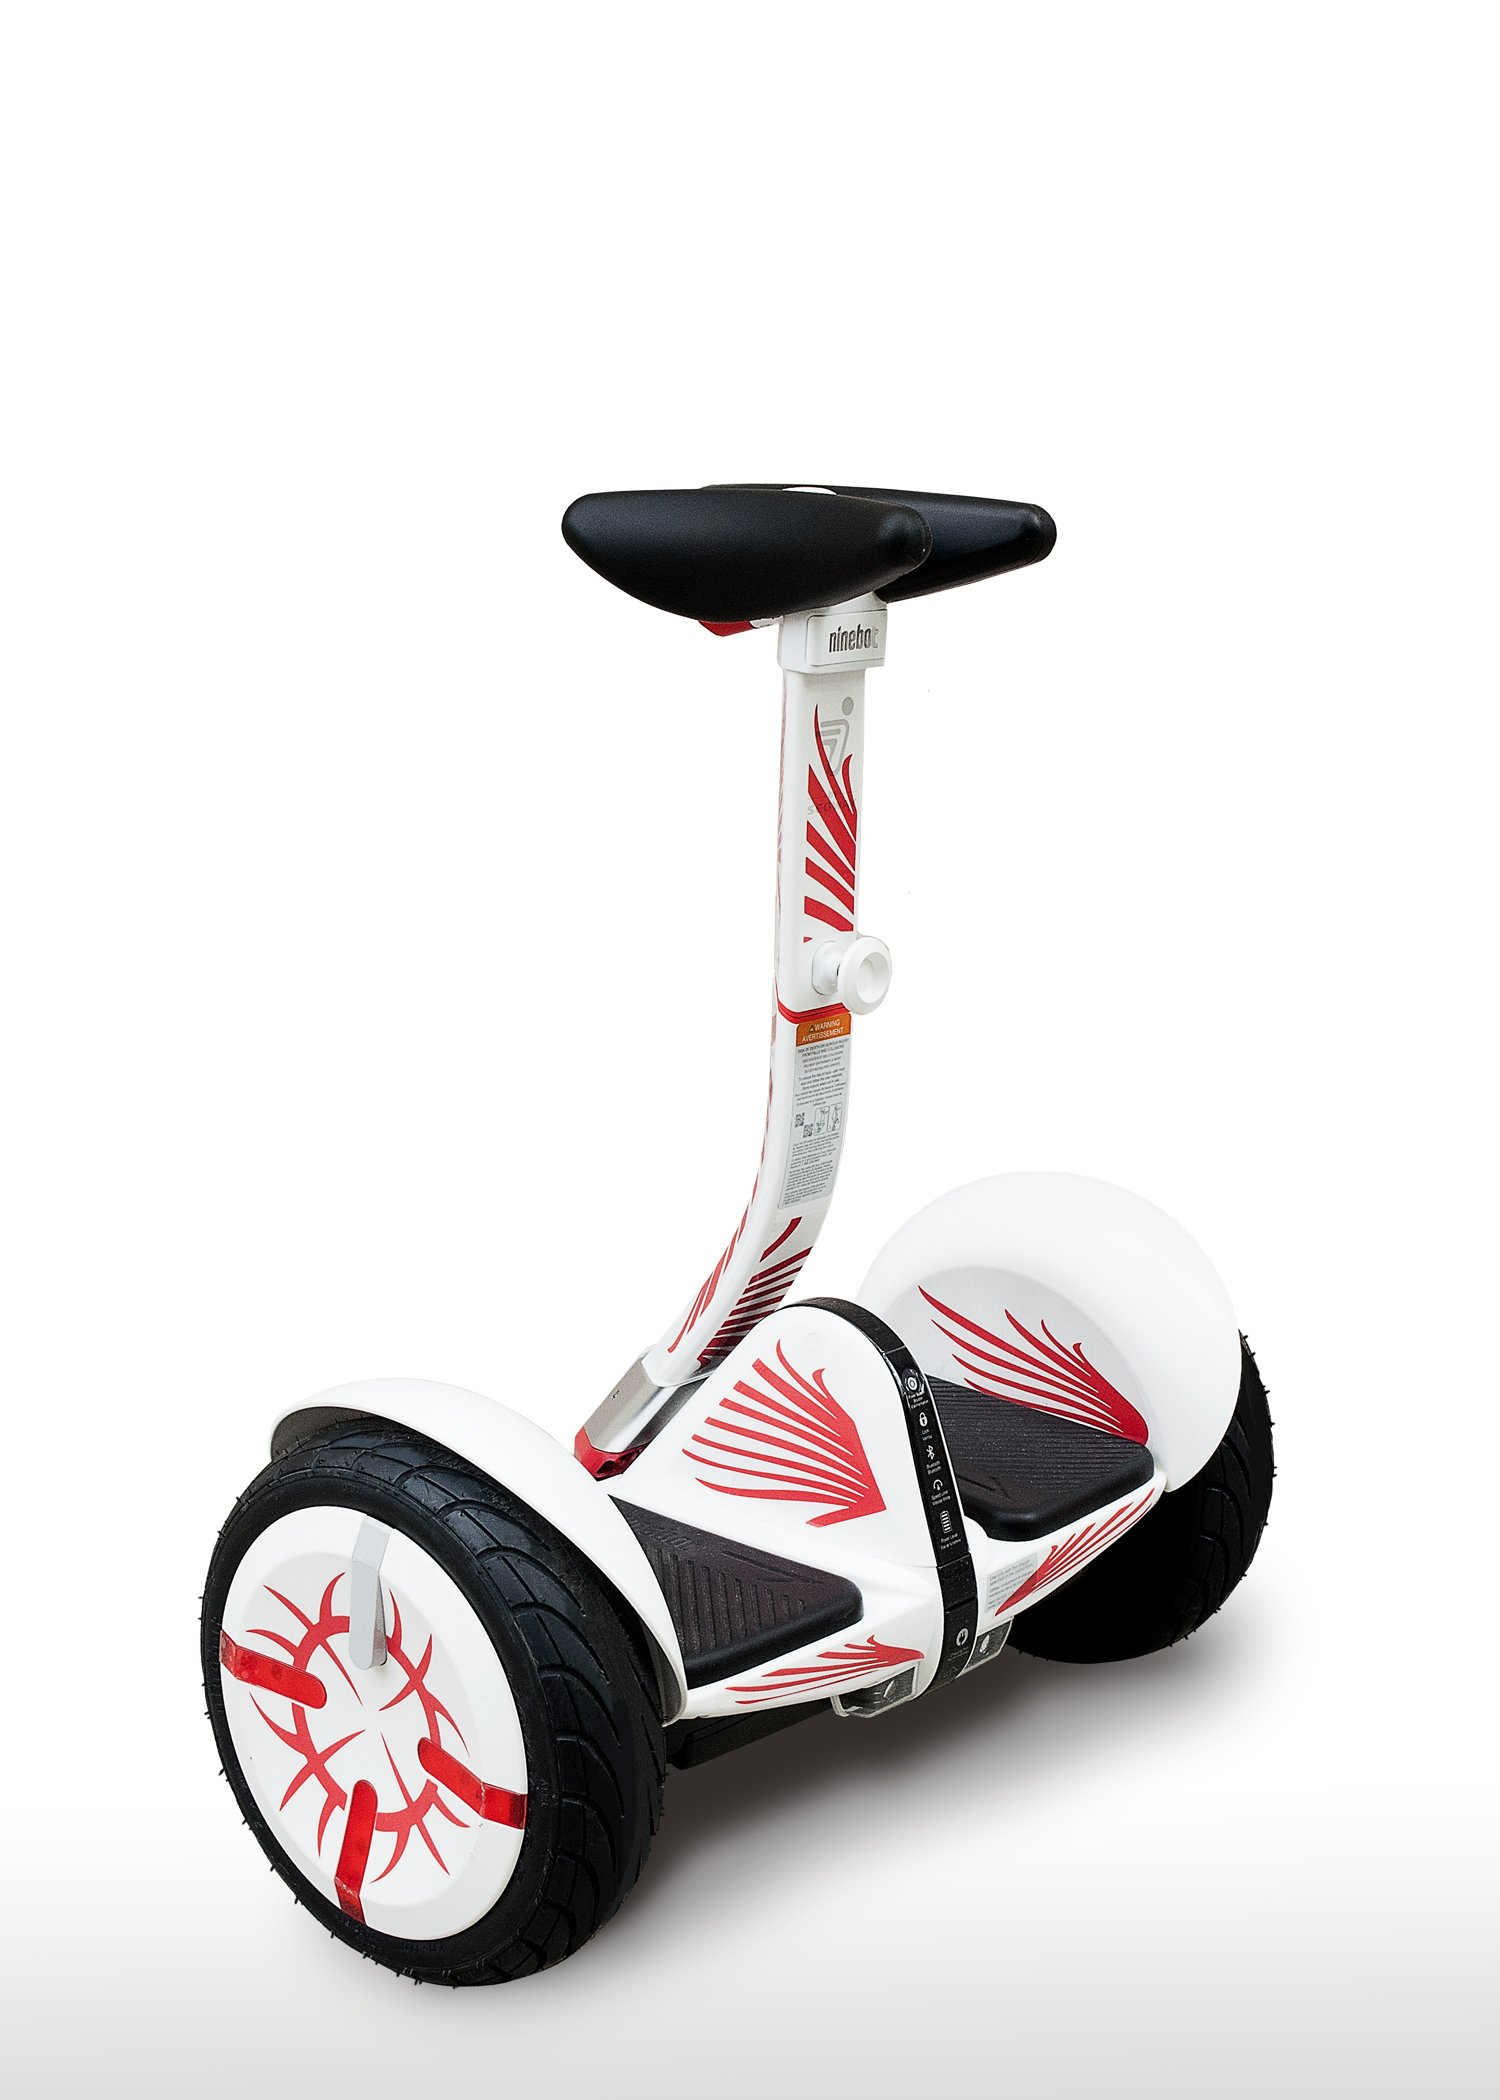 More4Mini Kit for Segway Mini Pro - Flames (Does not Include Segway MiniPro) (White, Knee Controlled Bar)